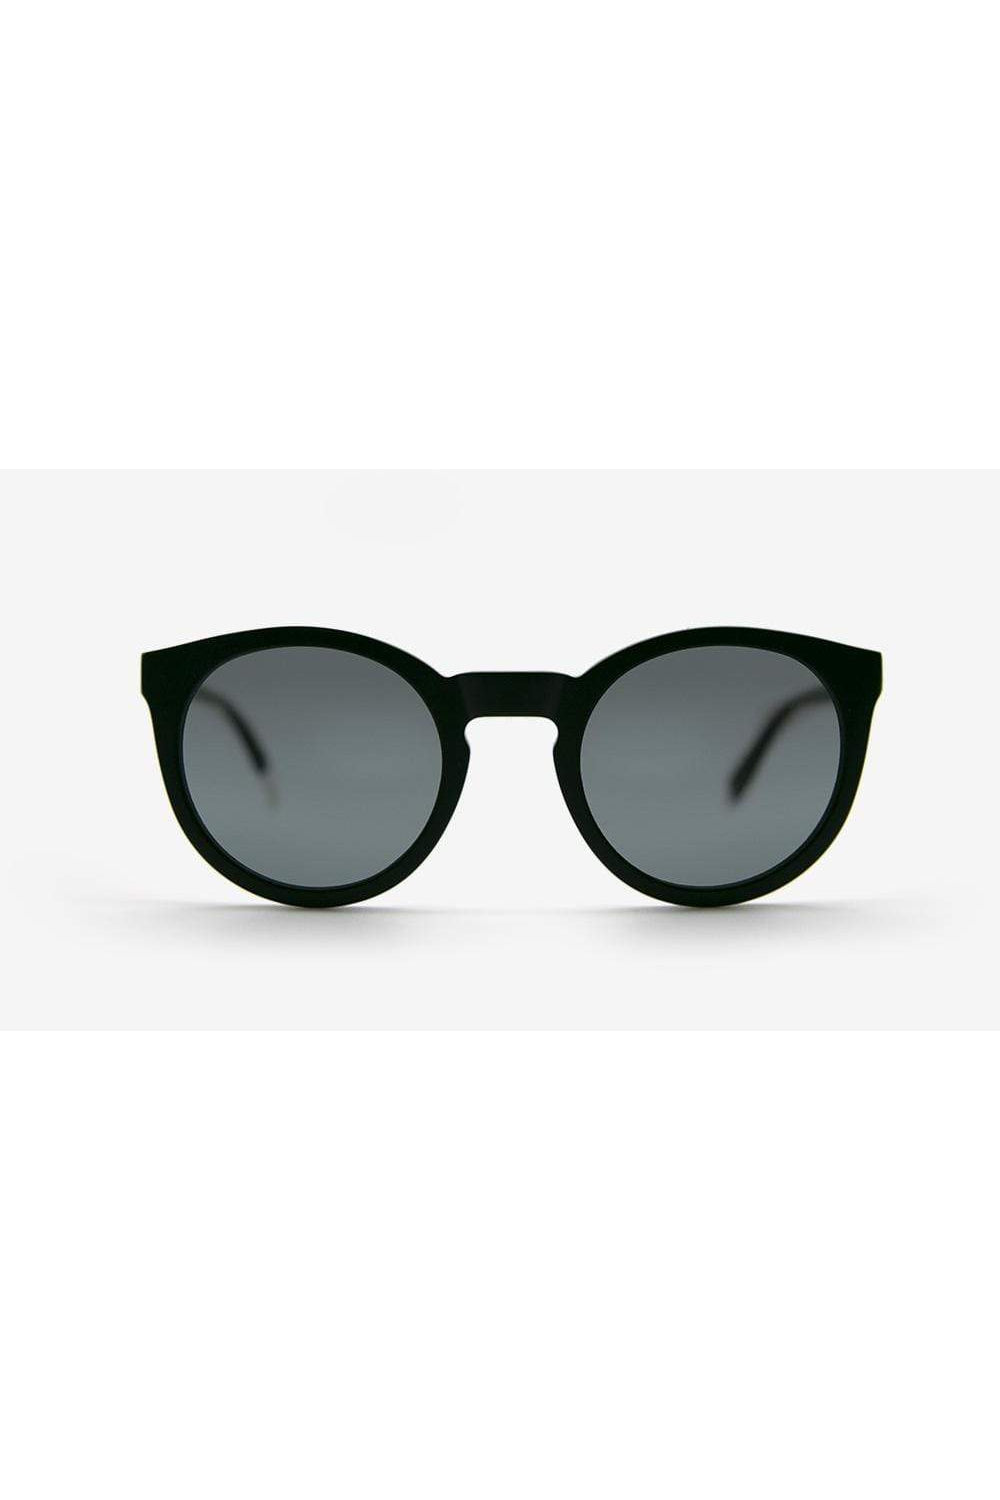 PALA sunglasses Asha Sunglasses in Recycled Acetate. sustainable fashion ethical fashion